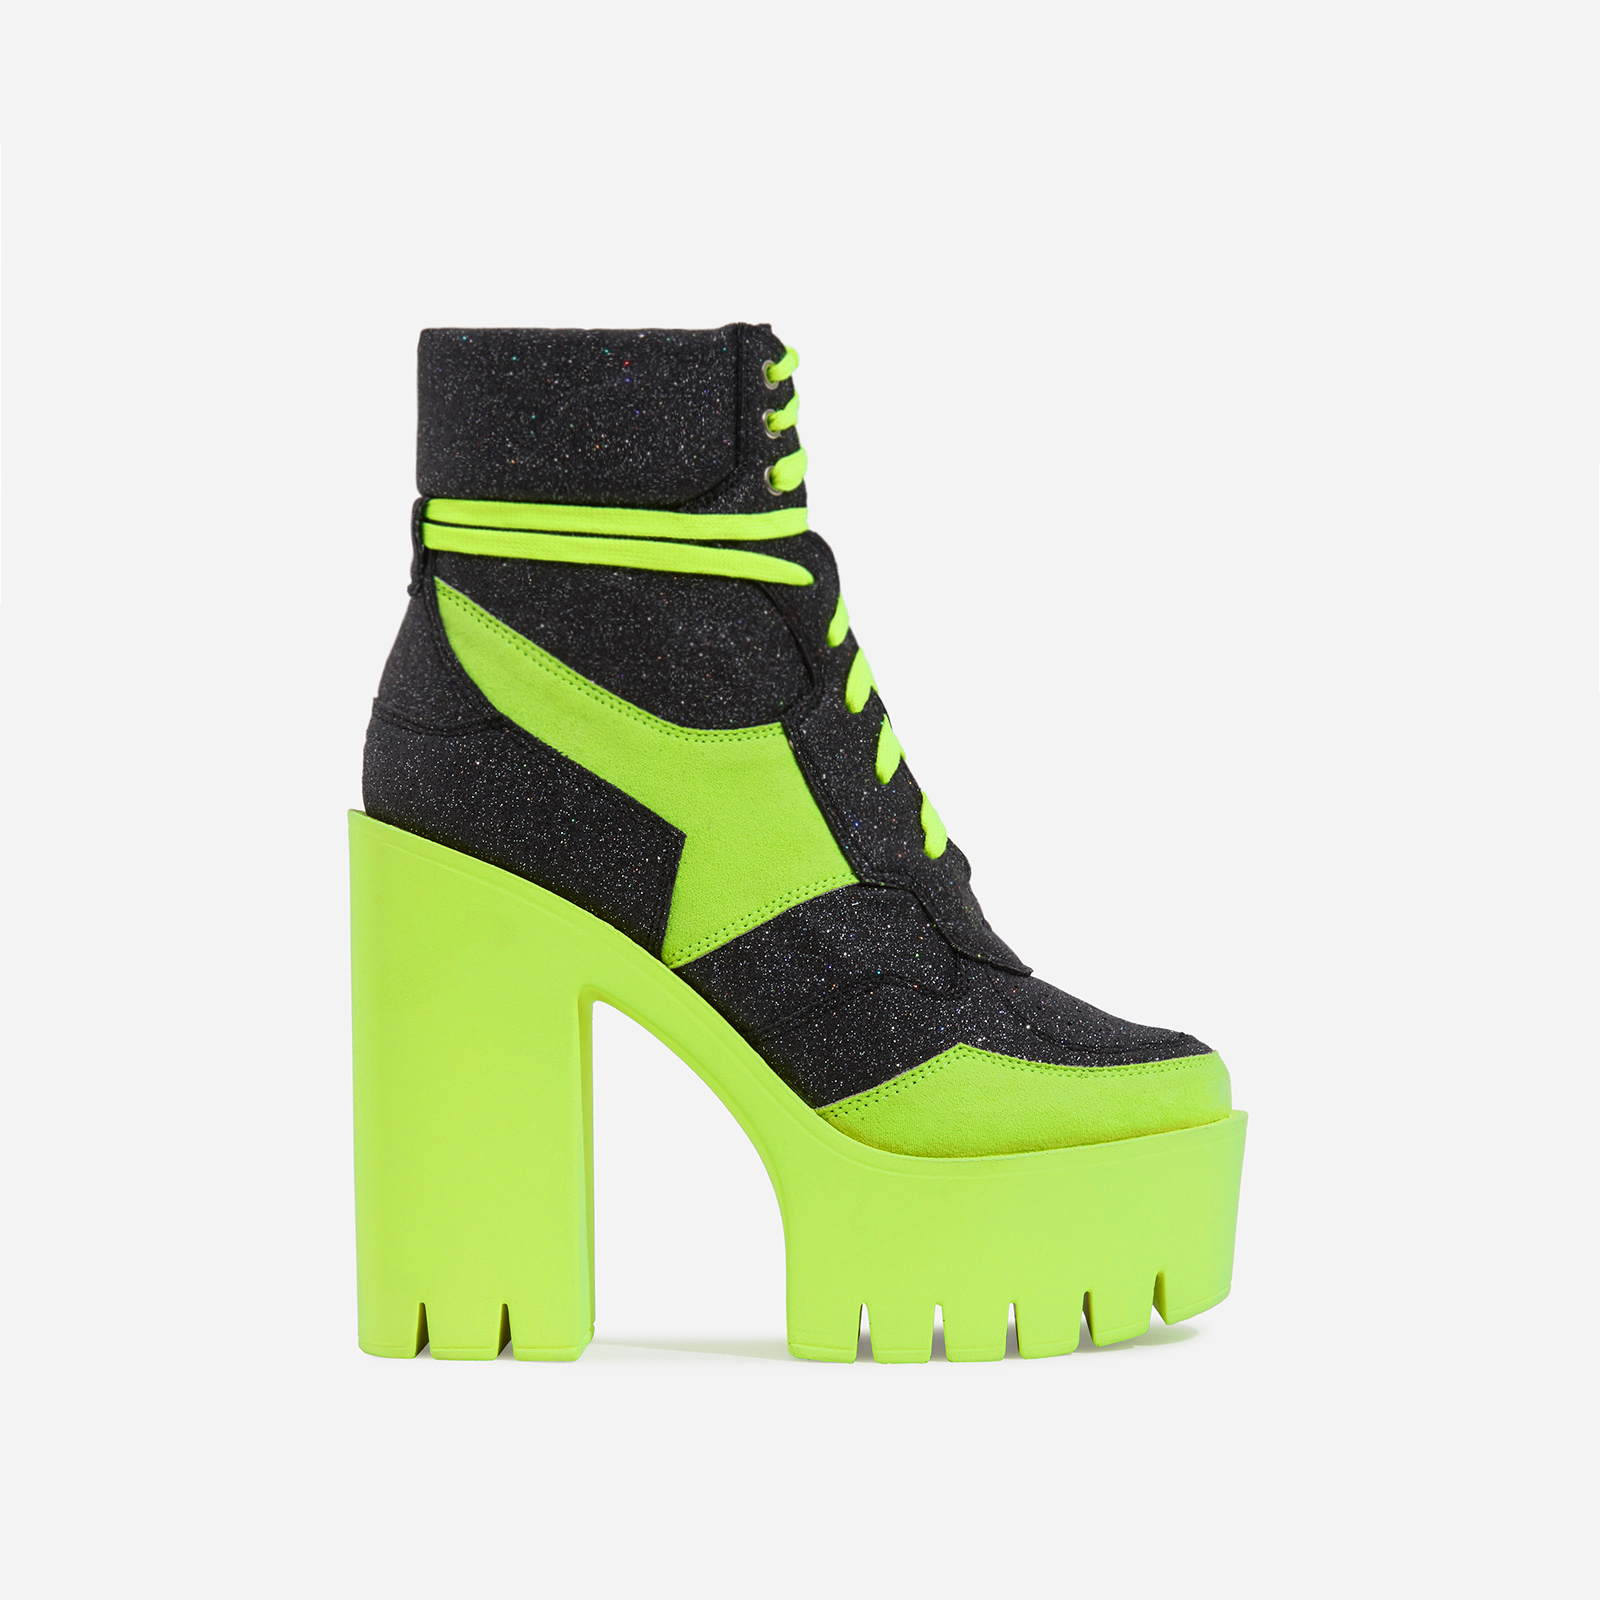 Penni Platform Lace Up Cleated Sole Ankle Biker Boot In Glitter And Lime Faux Suede